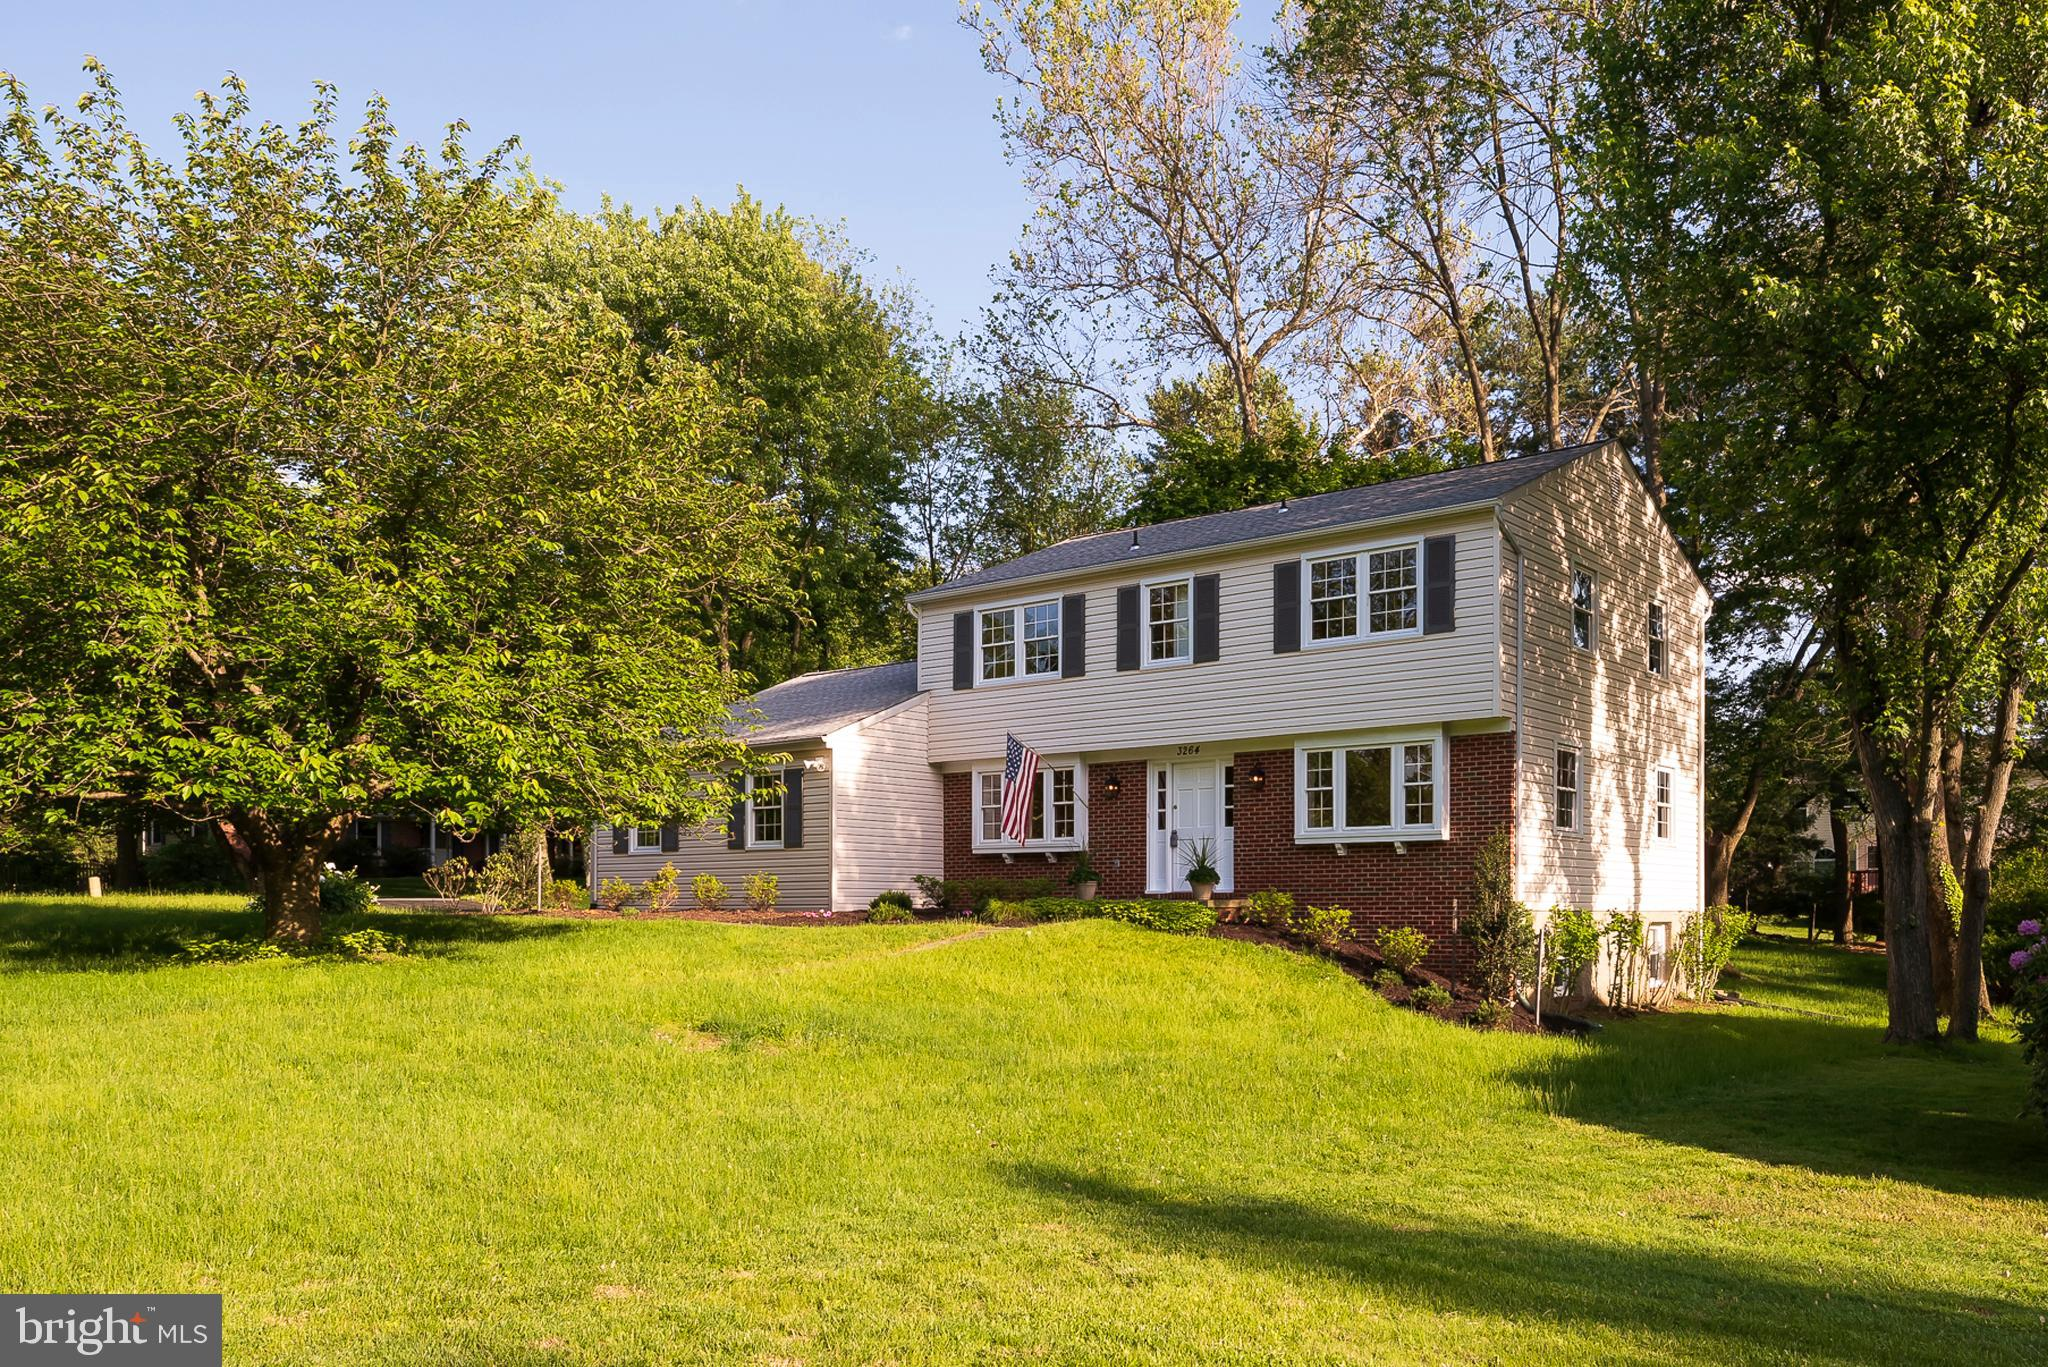 3264 OLD FENCE ROAD, ELLICOTT CITY, MD 21042